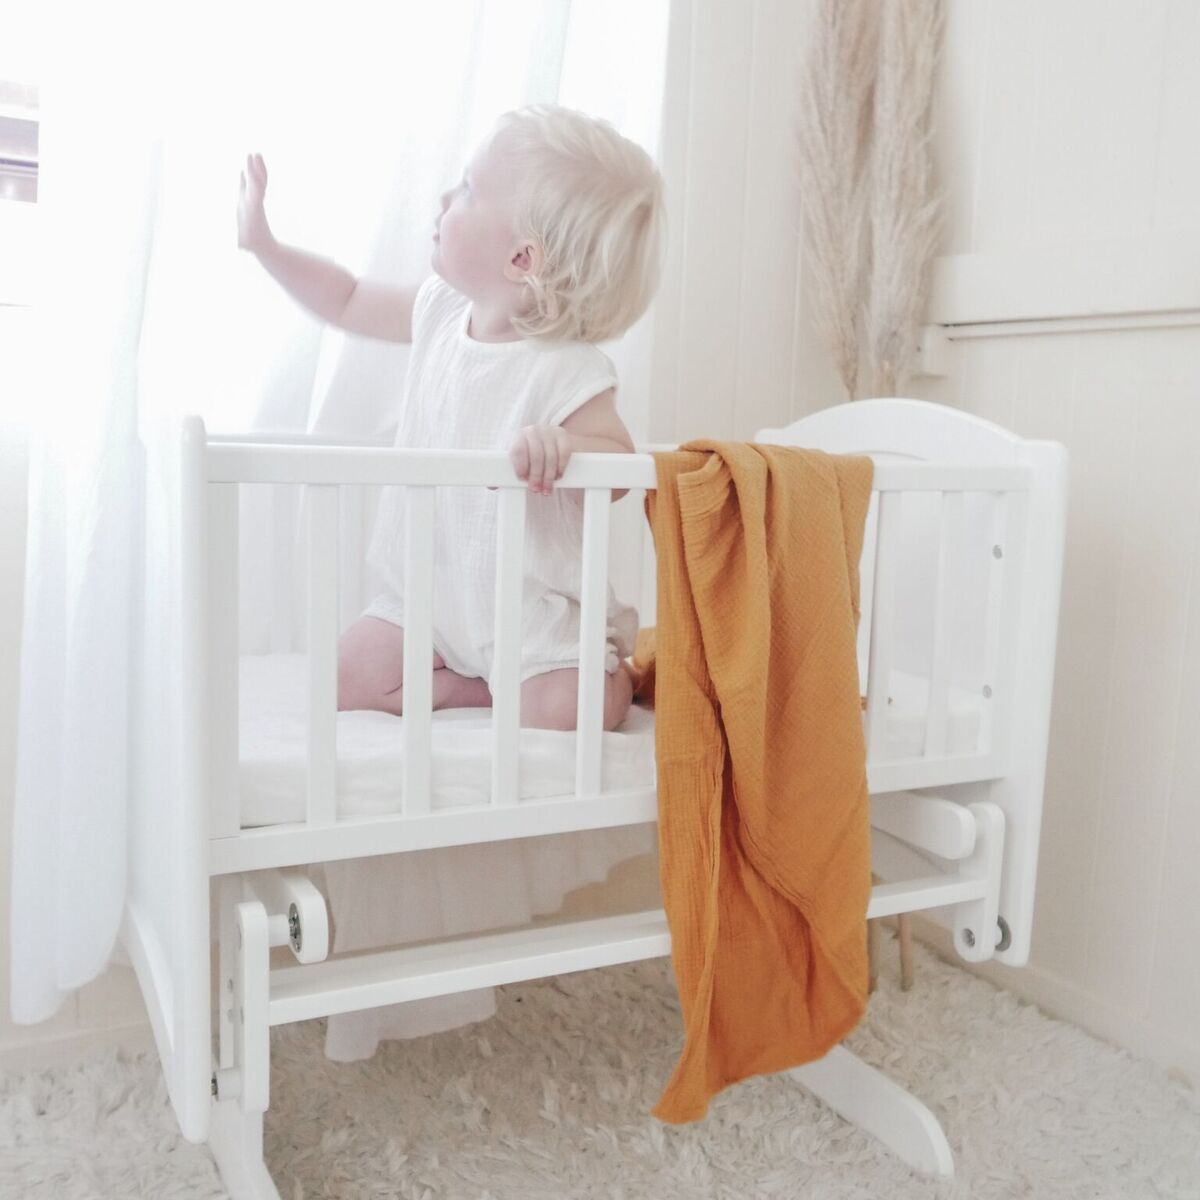 Rocking Cradle with Toddler Demonstrating Strength